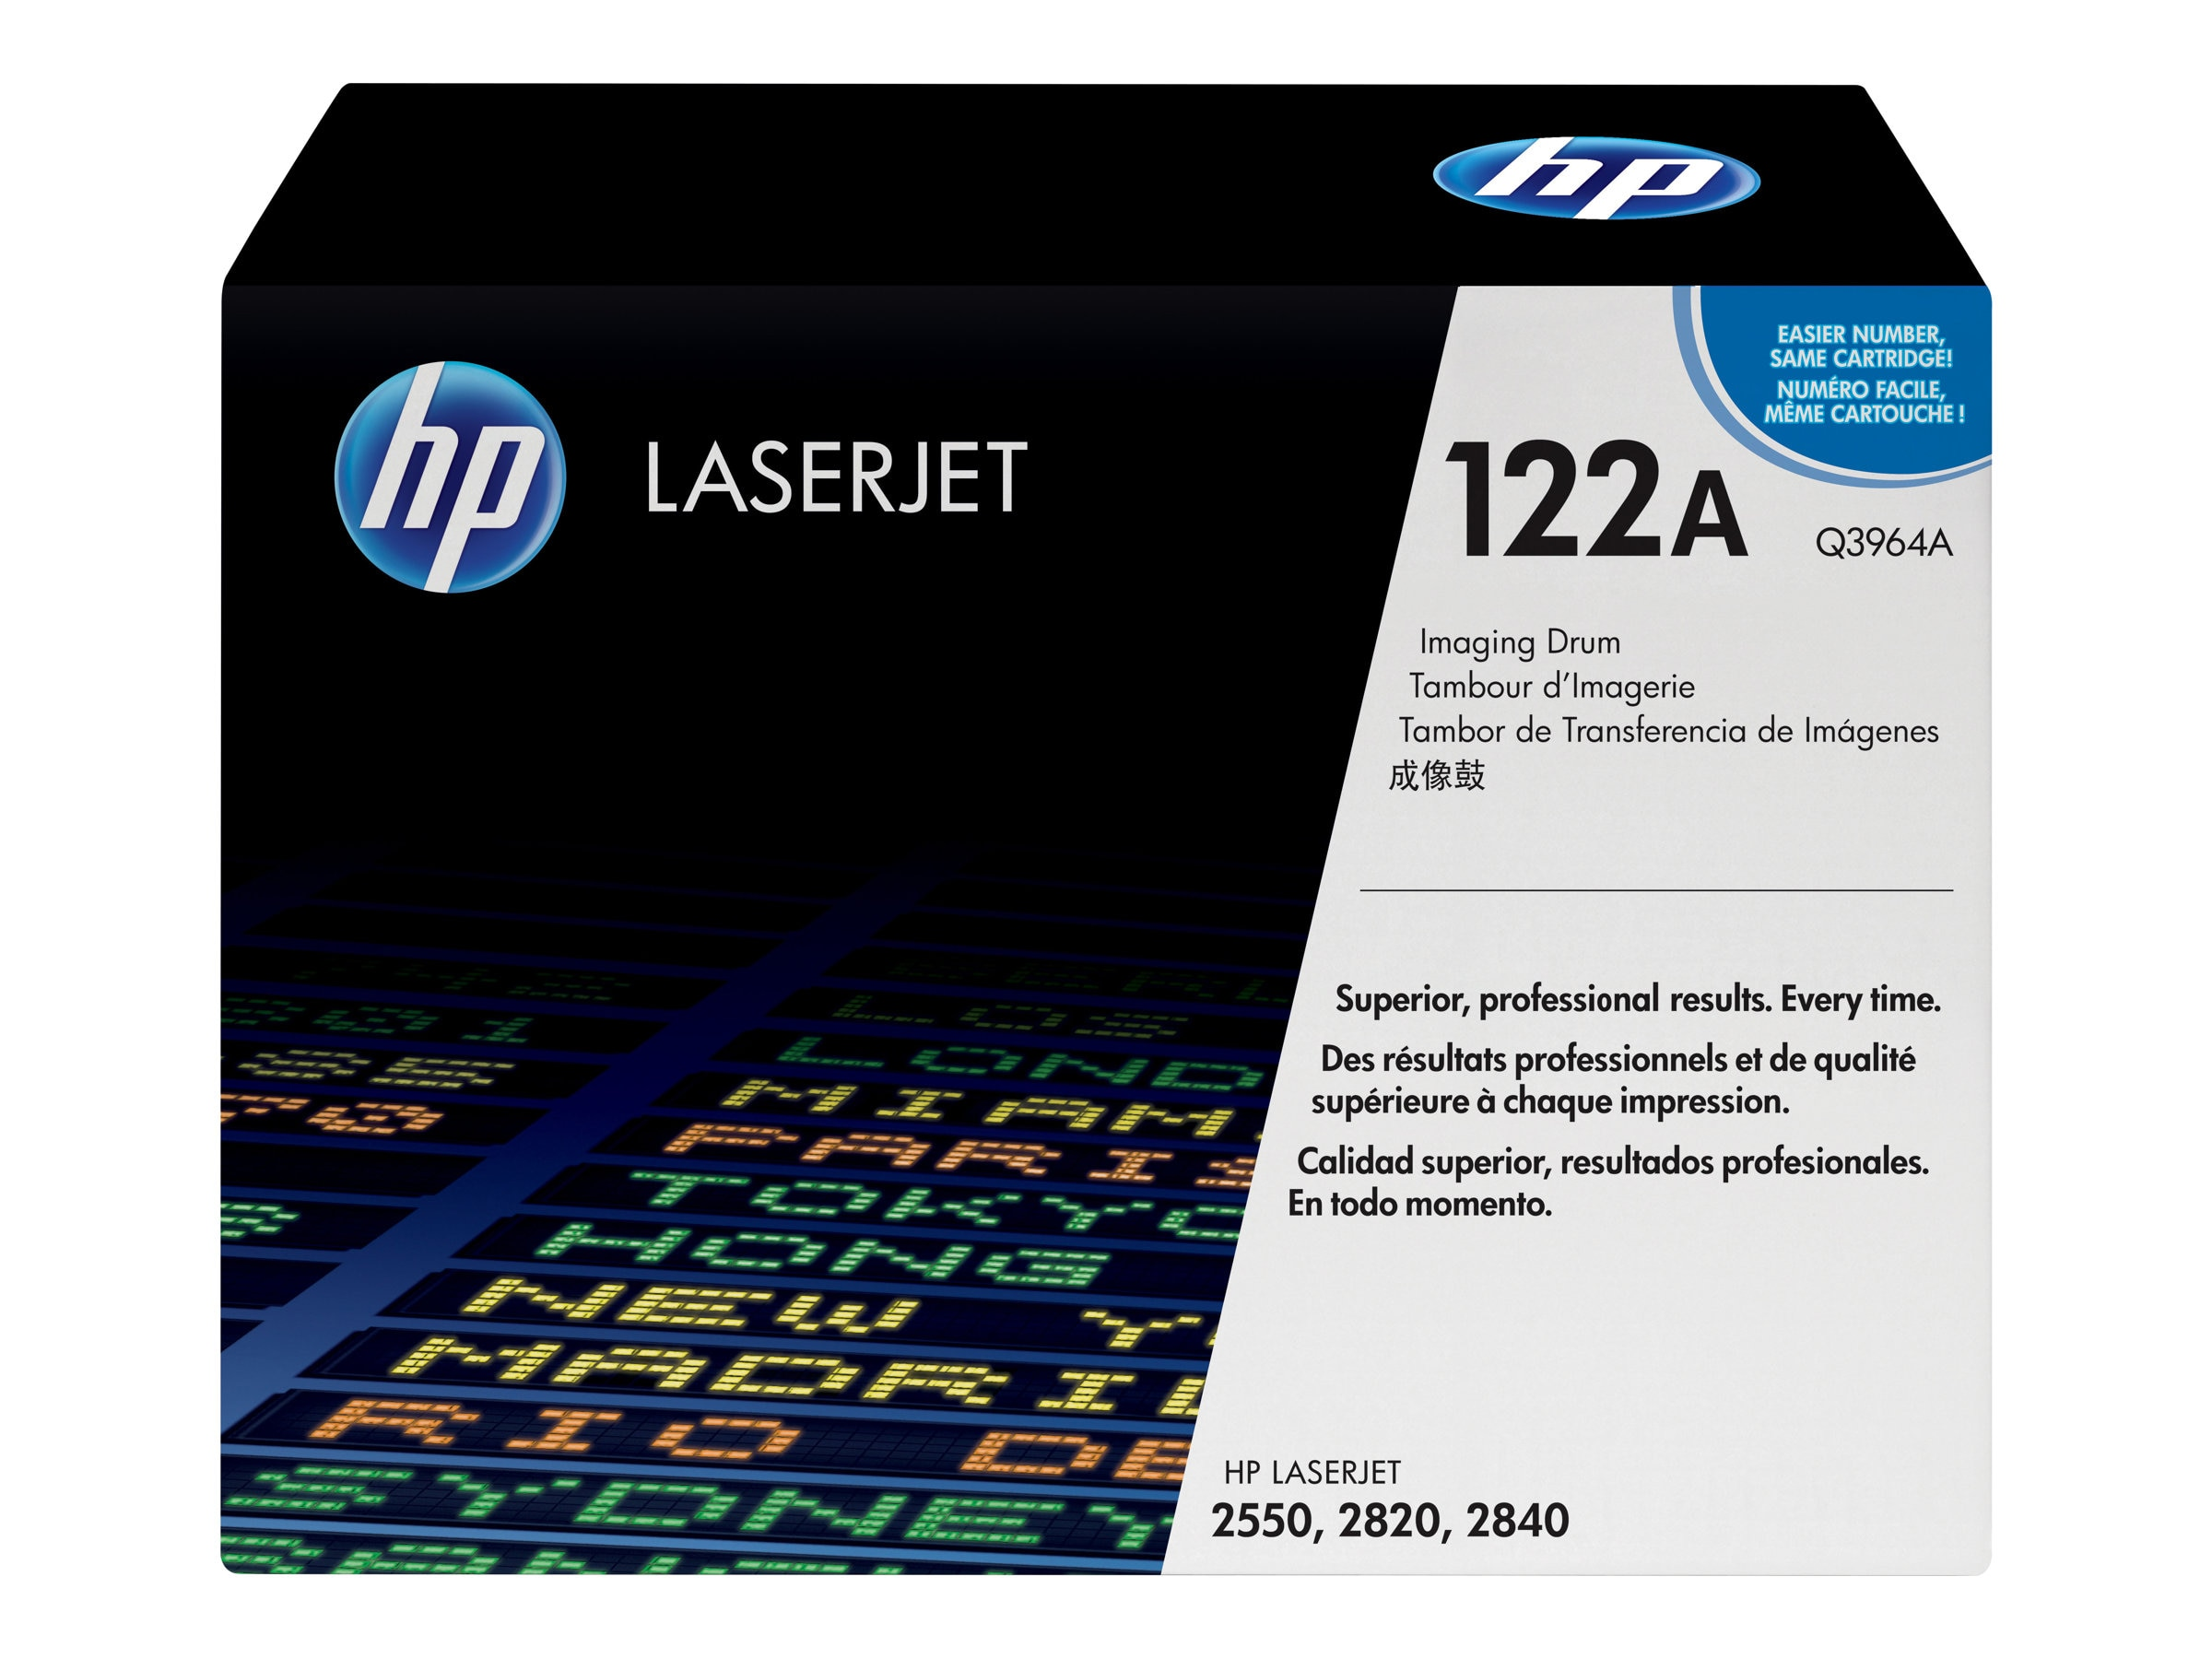 HP 122A Imaging Drum for HP Color LaserJet 2550n Printer & HP 2840 All-In-One